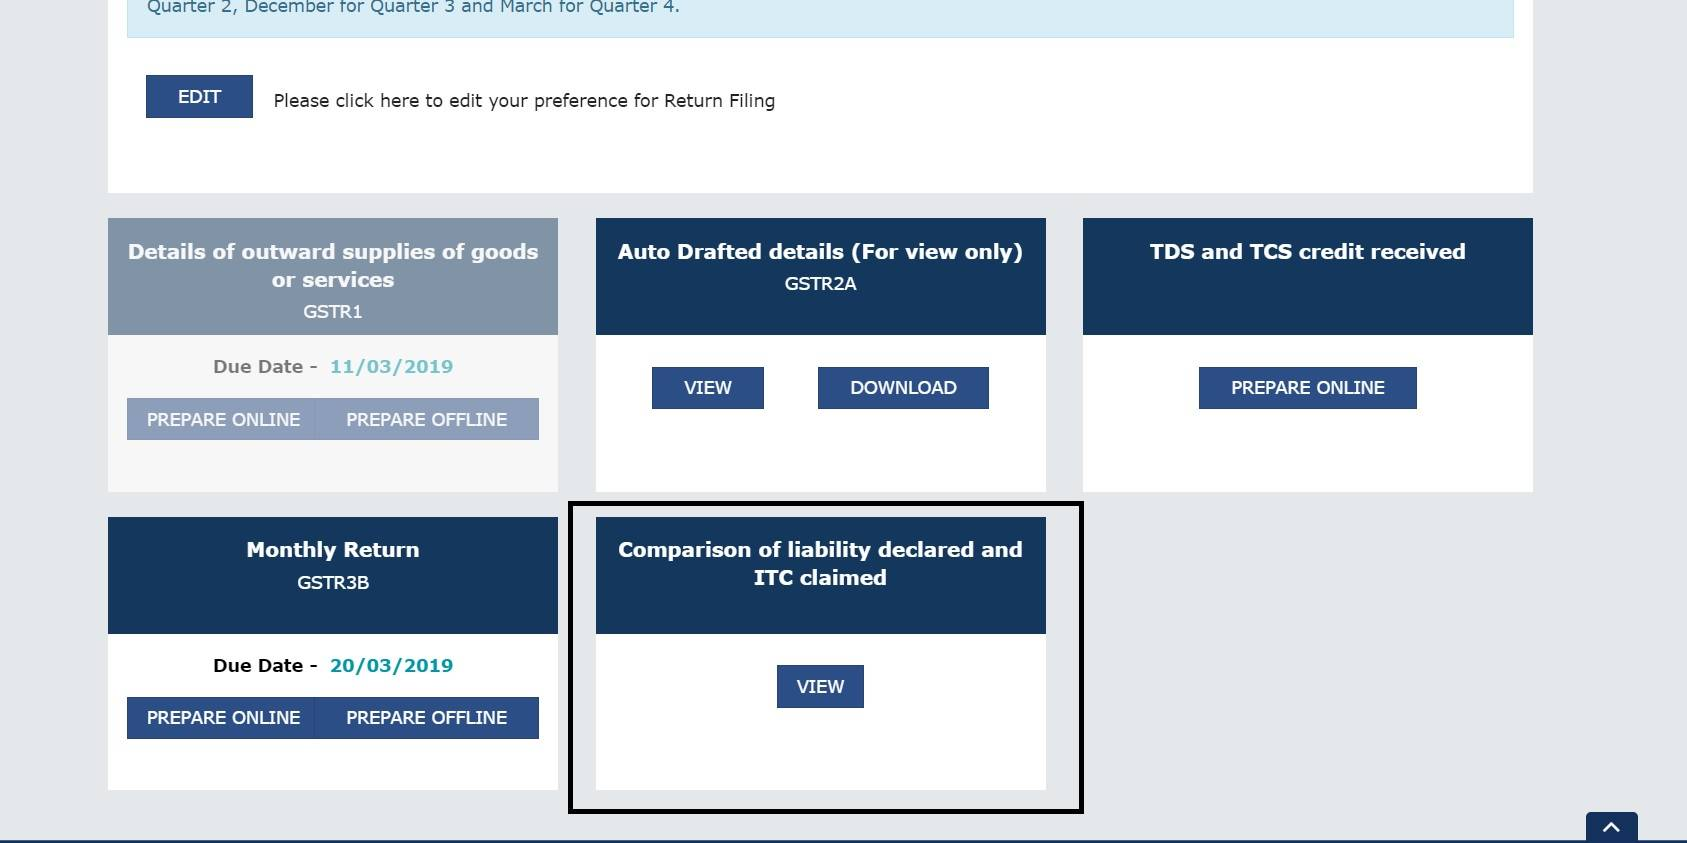 New Functionality update on GSTN Portal: Comparison of Liability